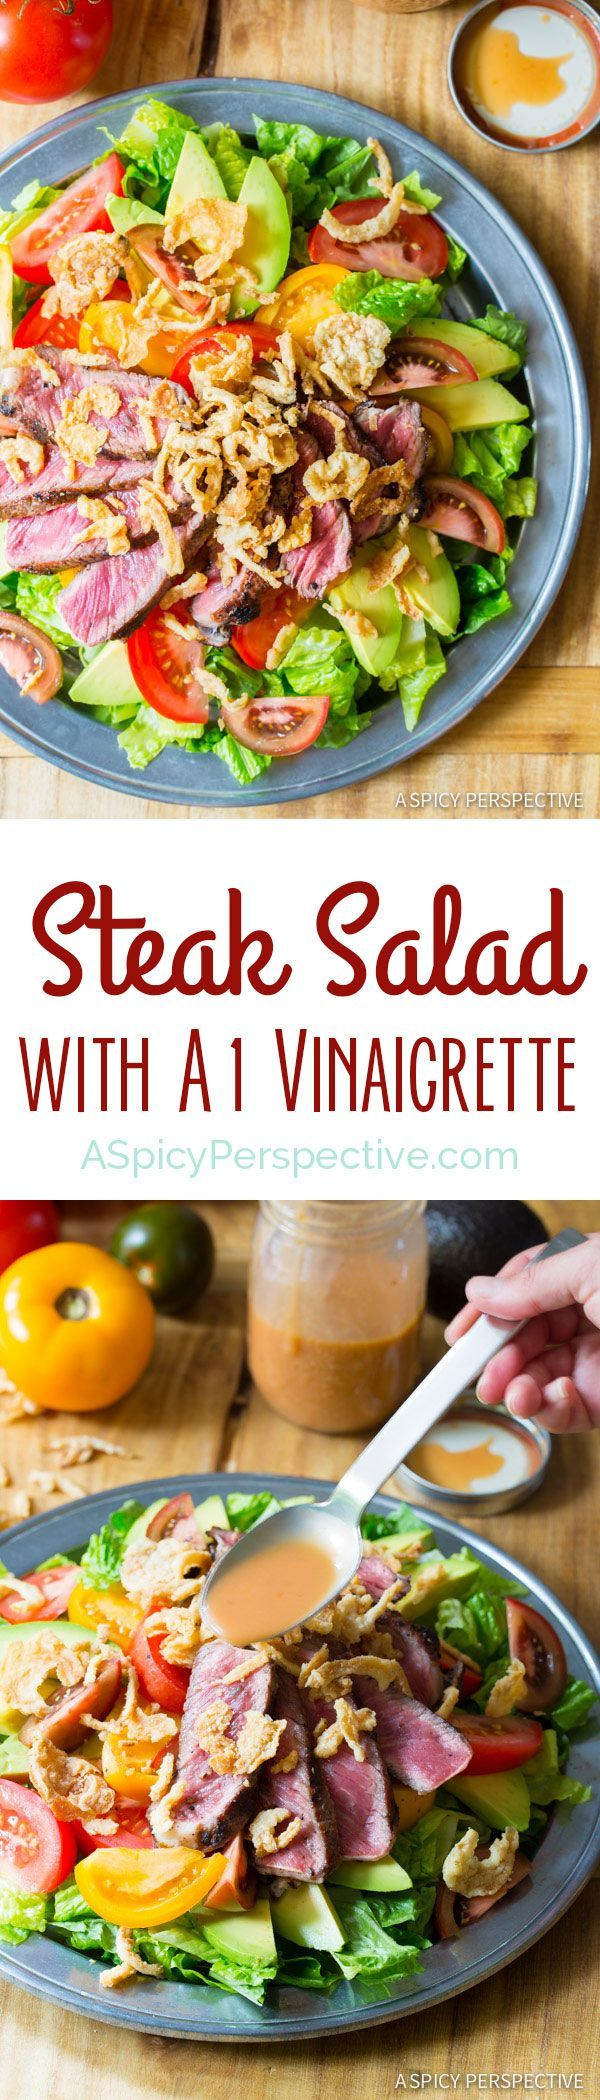 Love this Grilled Steak Salad with A1 Vinaigrette on ASpicyPerspective.com via @spicyperspectiv